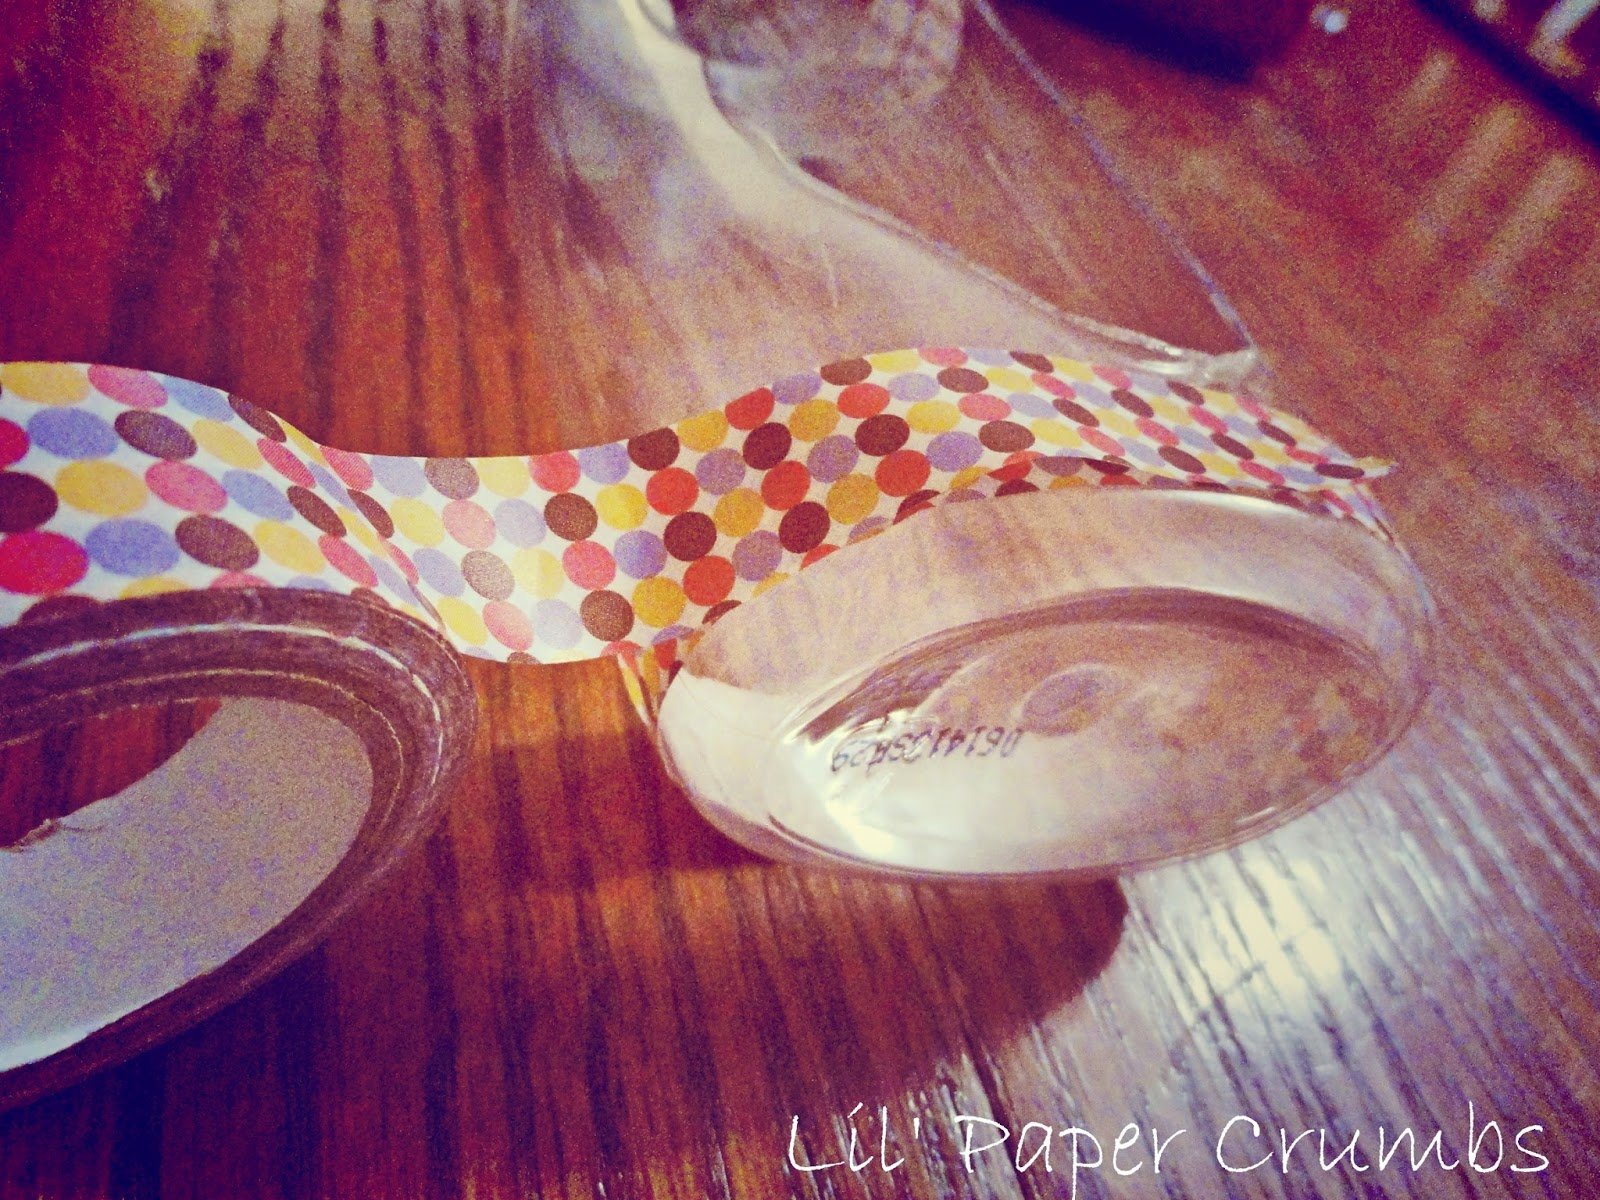 Q-tip holder: Decorate your bottle - Lil' Paper Crumbs